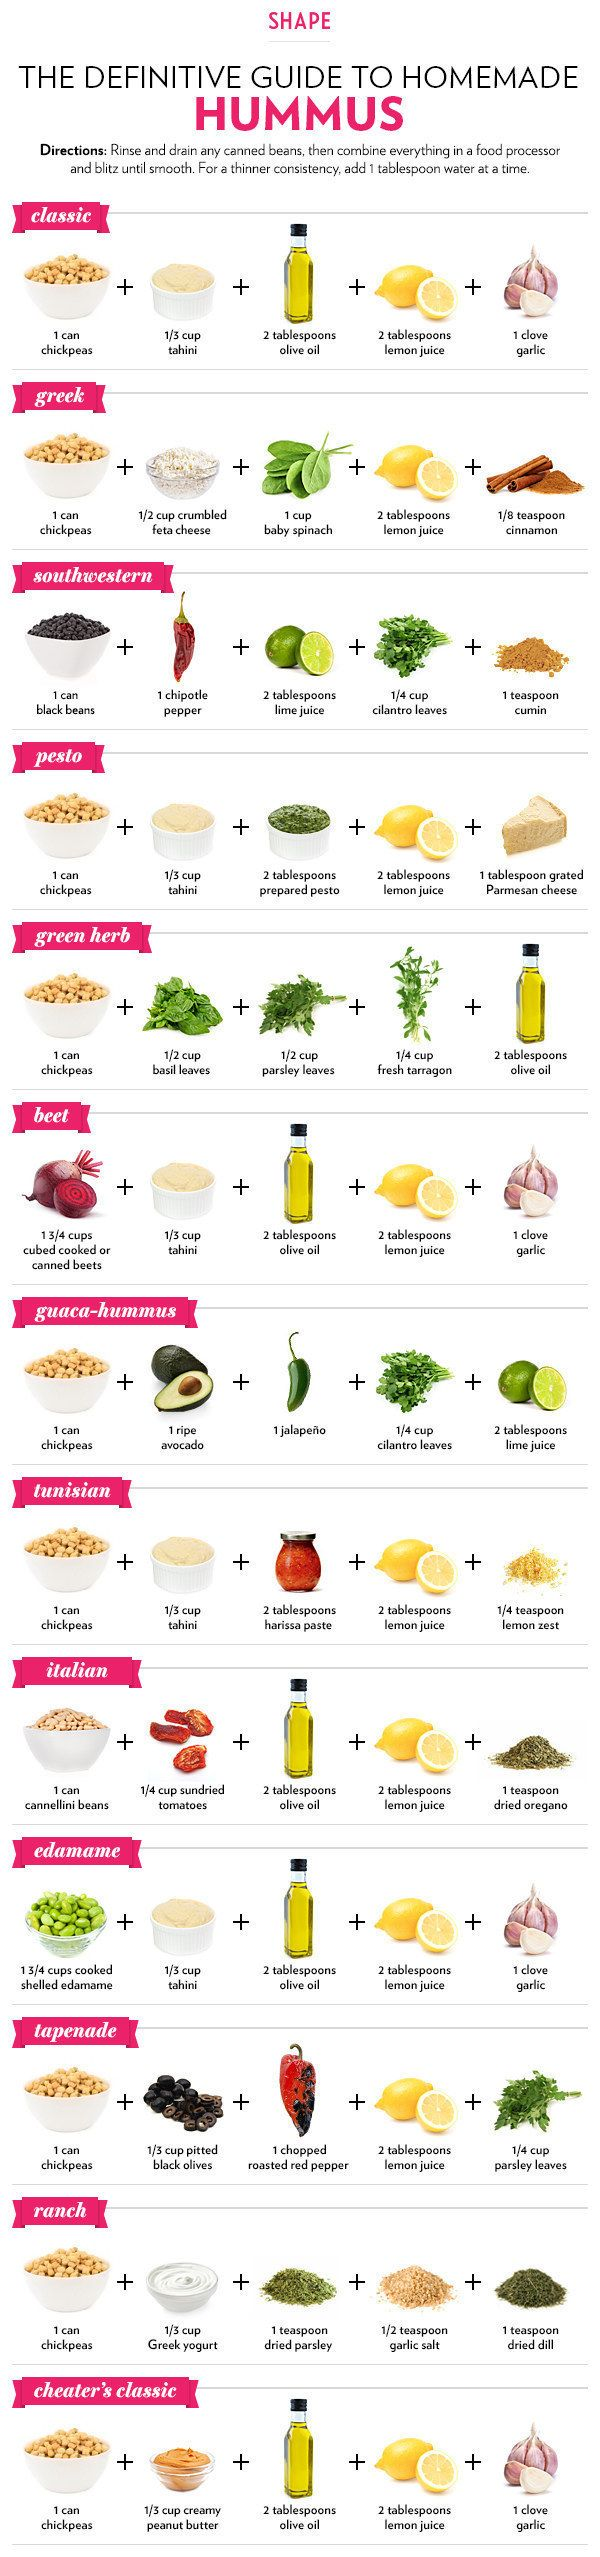 Get creative with hummus as another way to add protein and iron to your diet. | 22 Things You Should Know If You Want To Stop Eating Meat